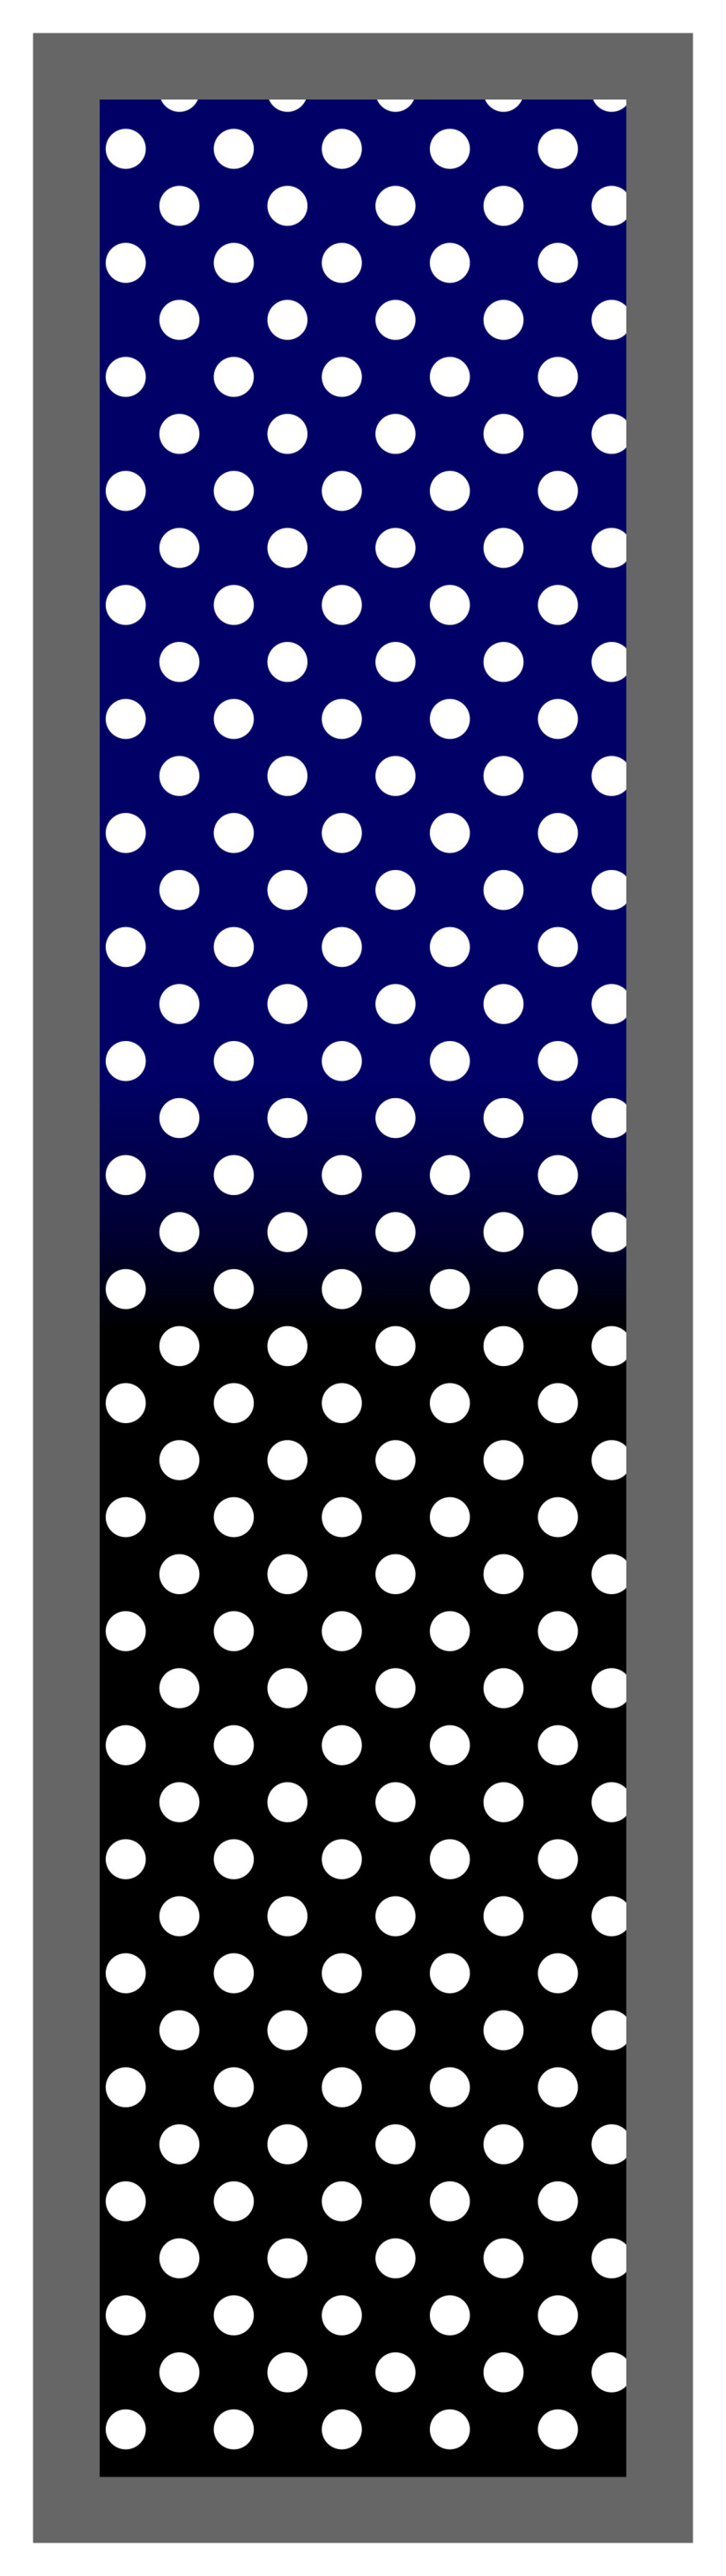 Navy-Black Ombre Polka Dots